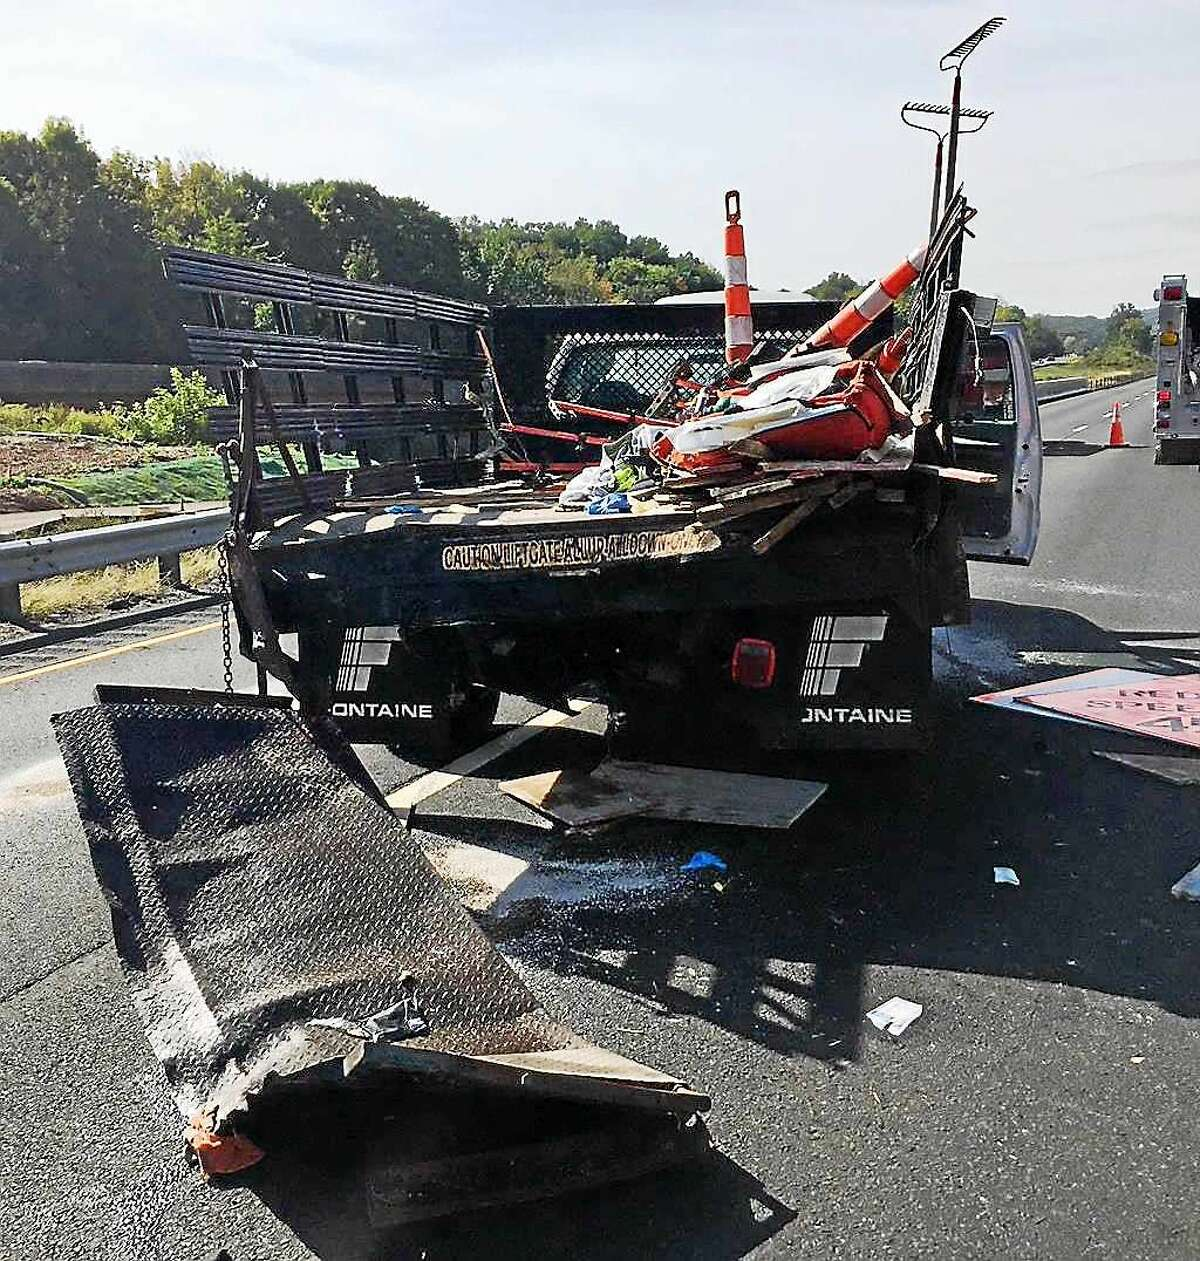 (Photo courtesy of the Connecticut State Police) A crash involving a tractor-trailer and two other vehicles blocked part of Interstate 91 southbound near Exit 20 in Middletown late Monday morning. One of the vehicles involved was reported to be a state Department of Trasnportation construction truck.